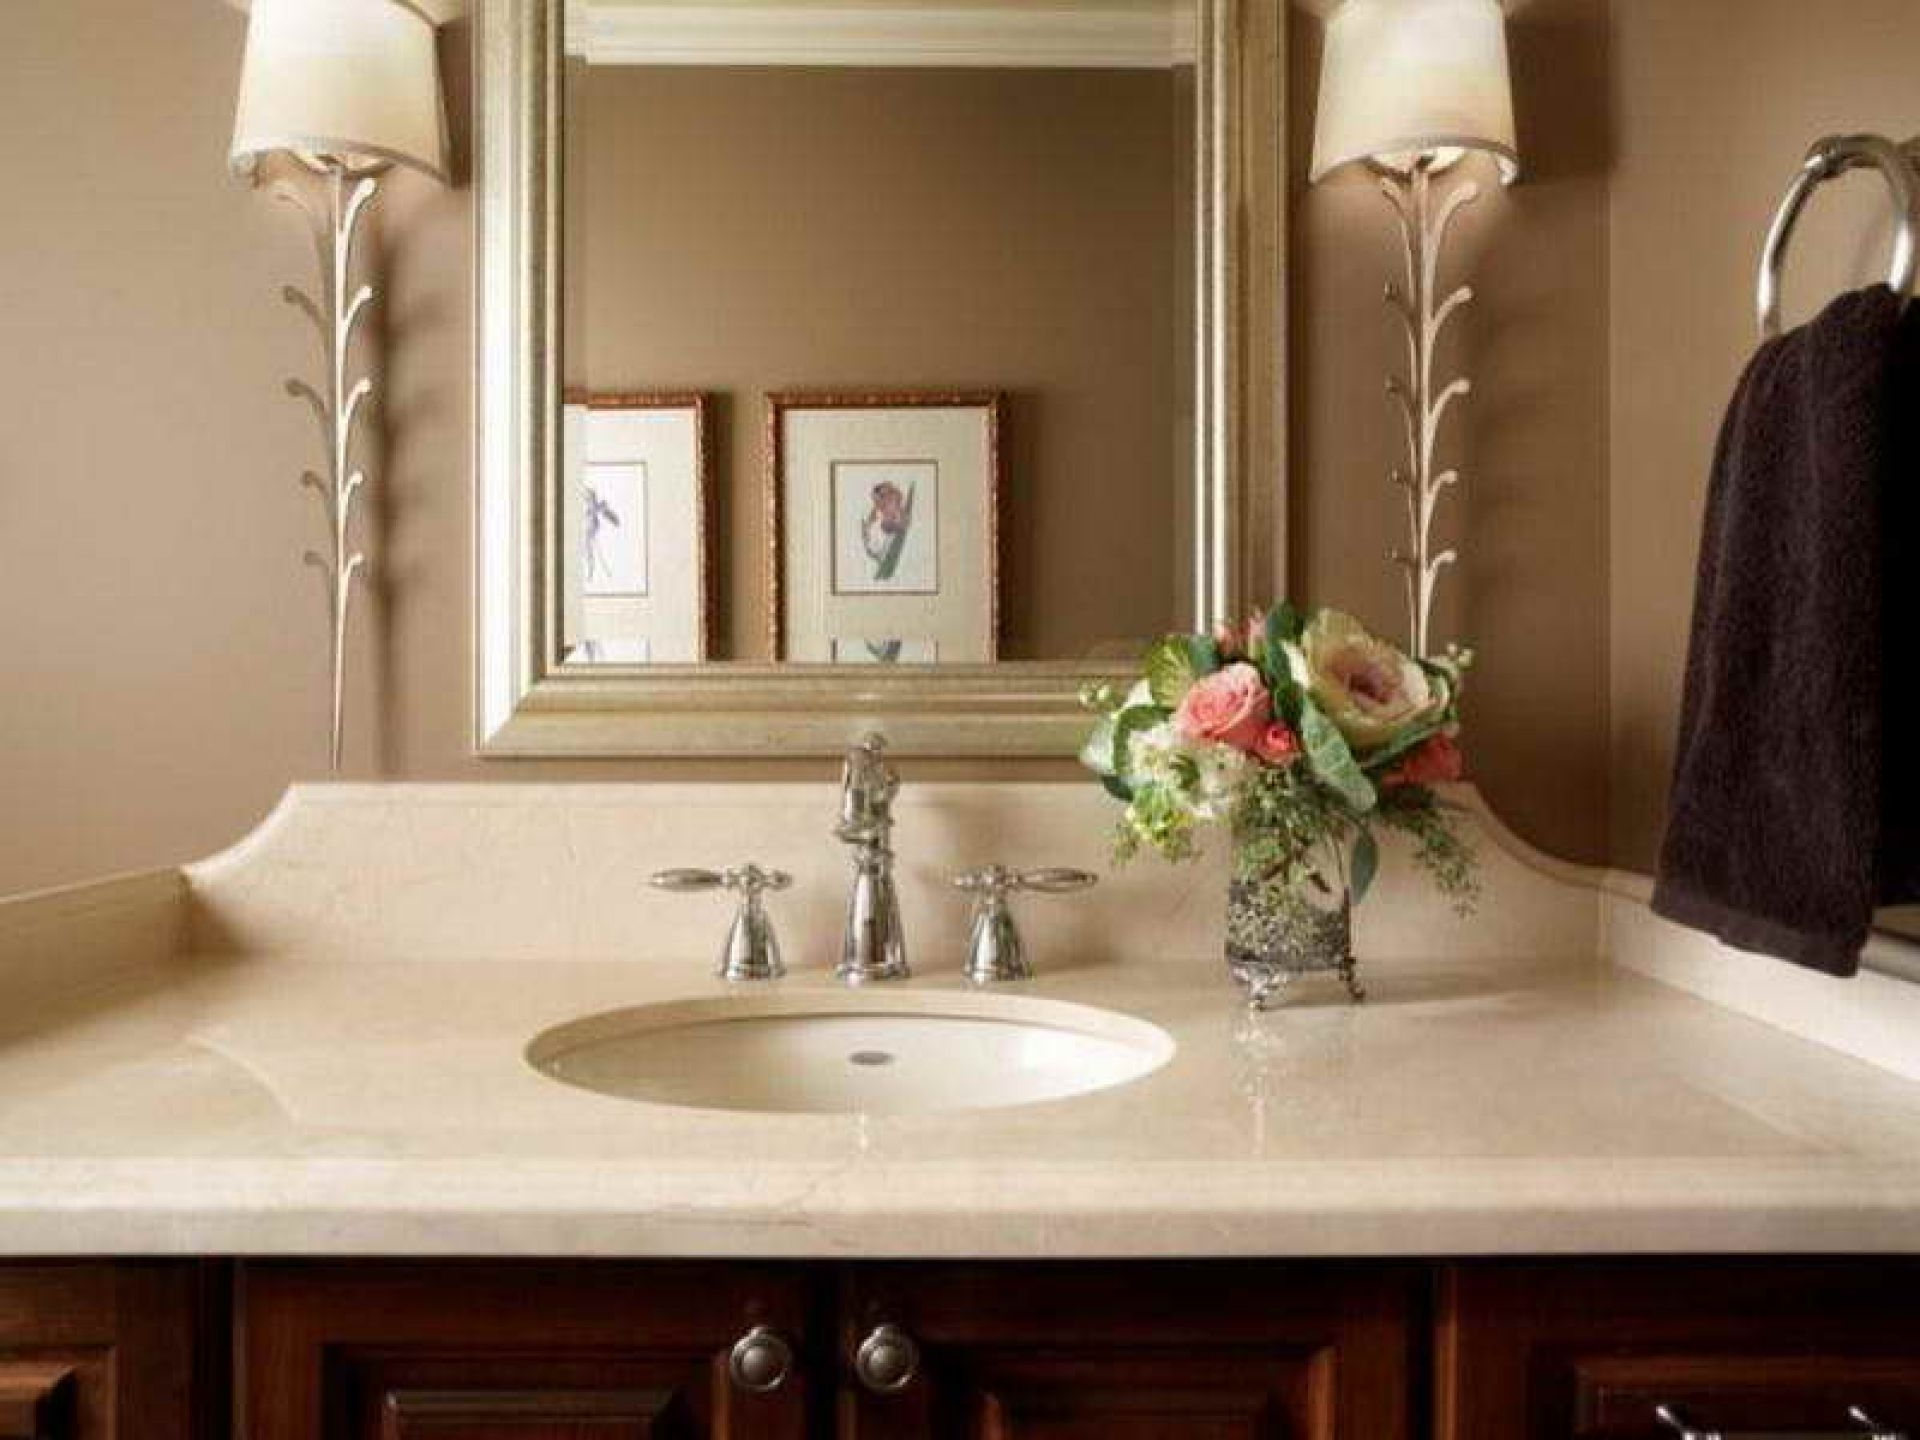 best powder room faucets best powder room faucets powder room faucets lightandwiregallery 1920 x 1440